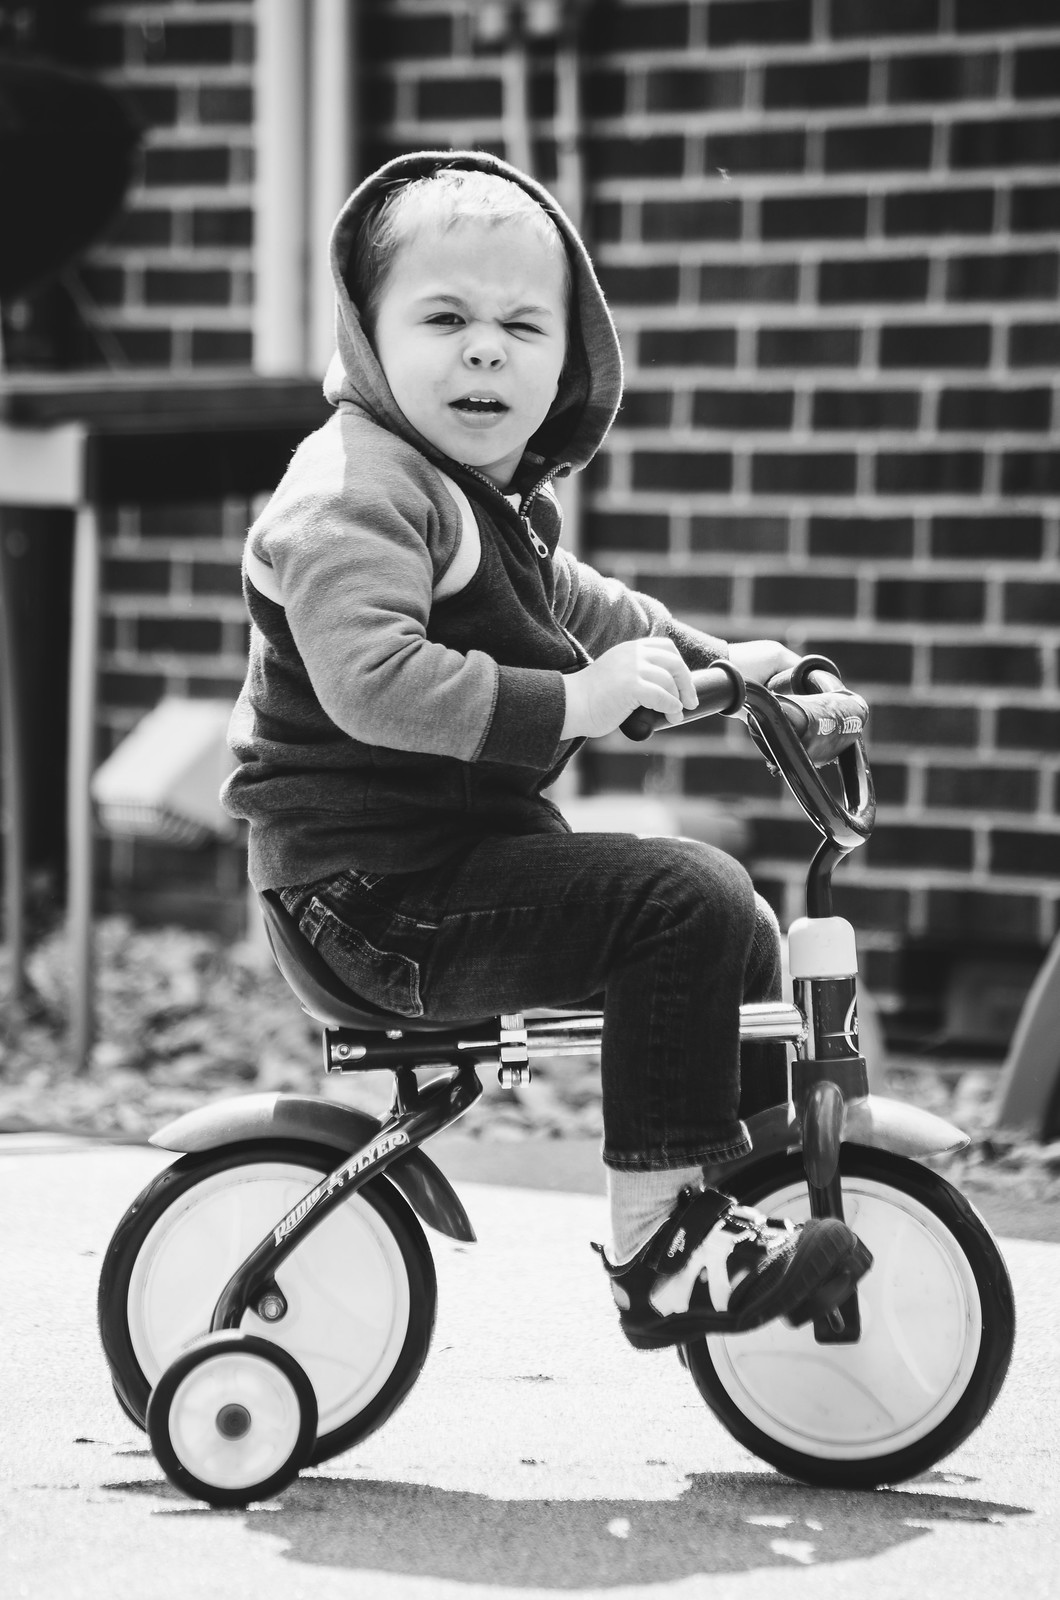 Micah on the trike